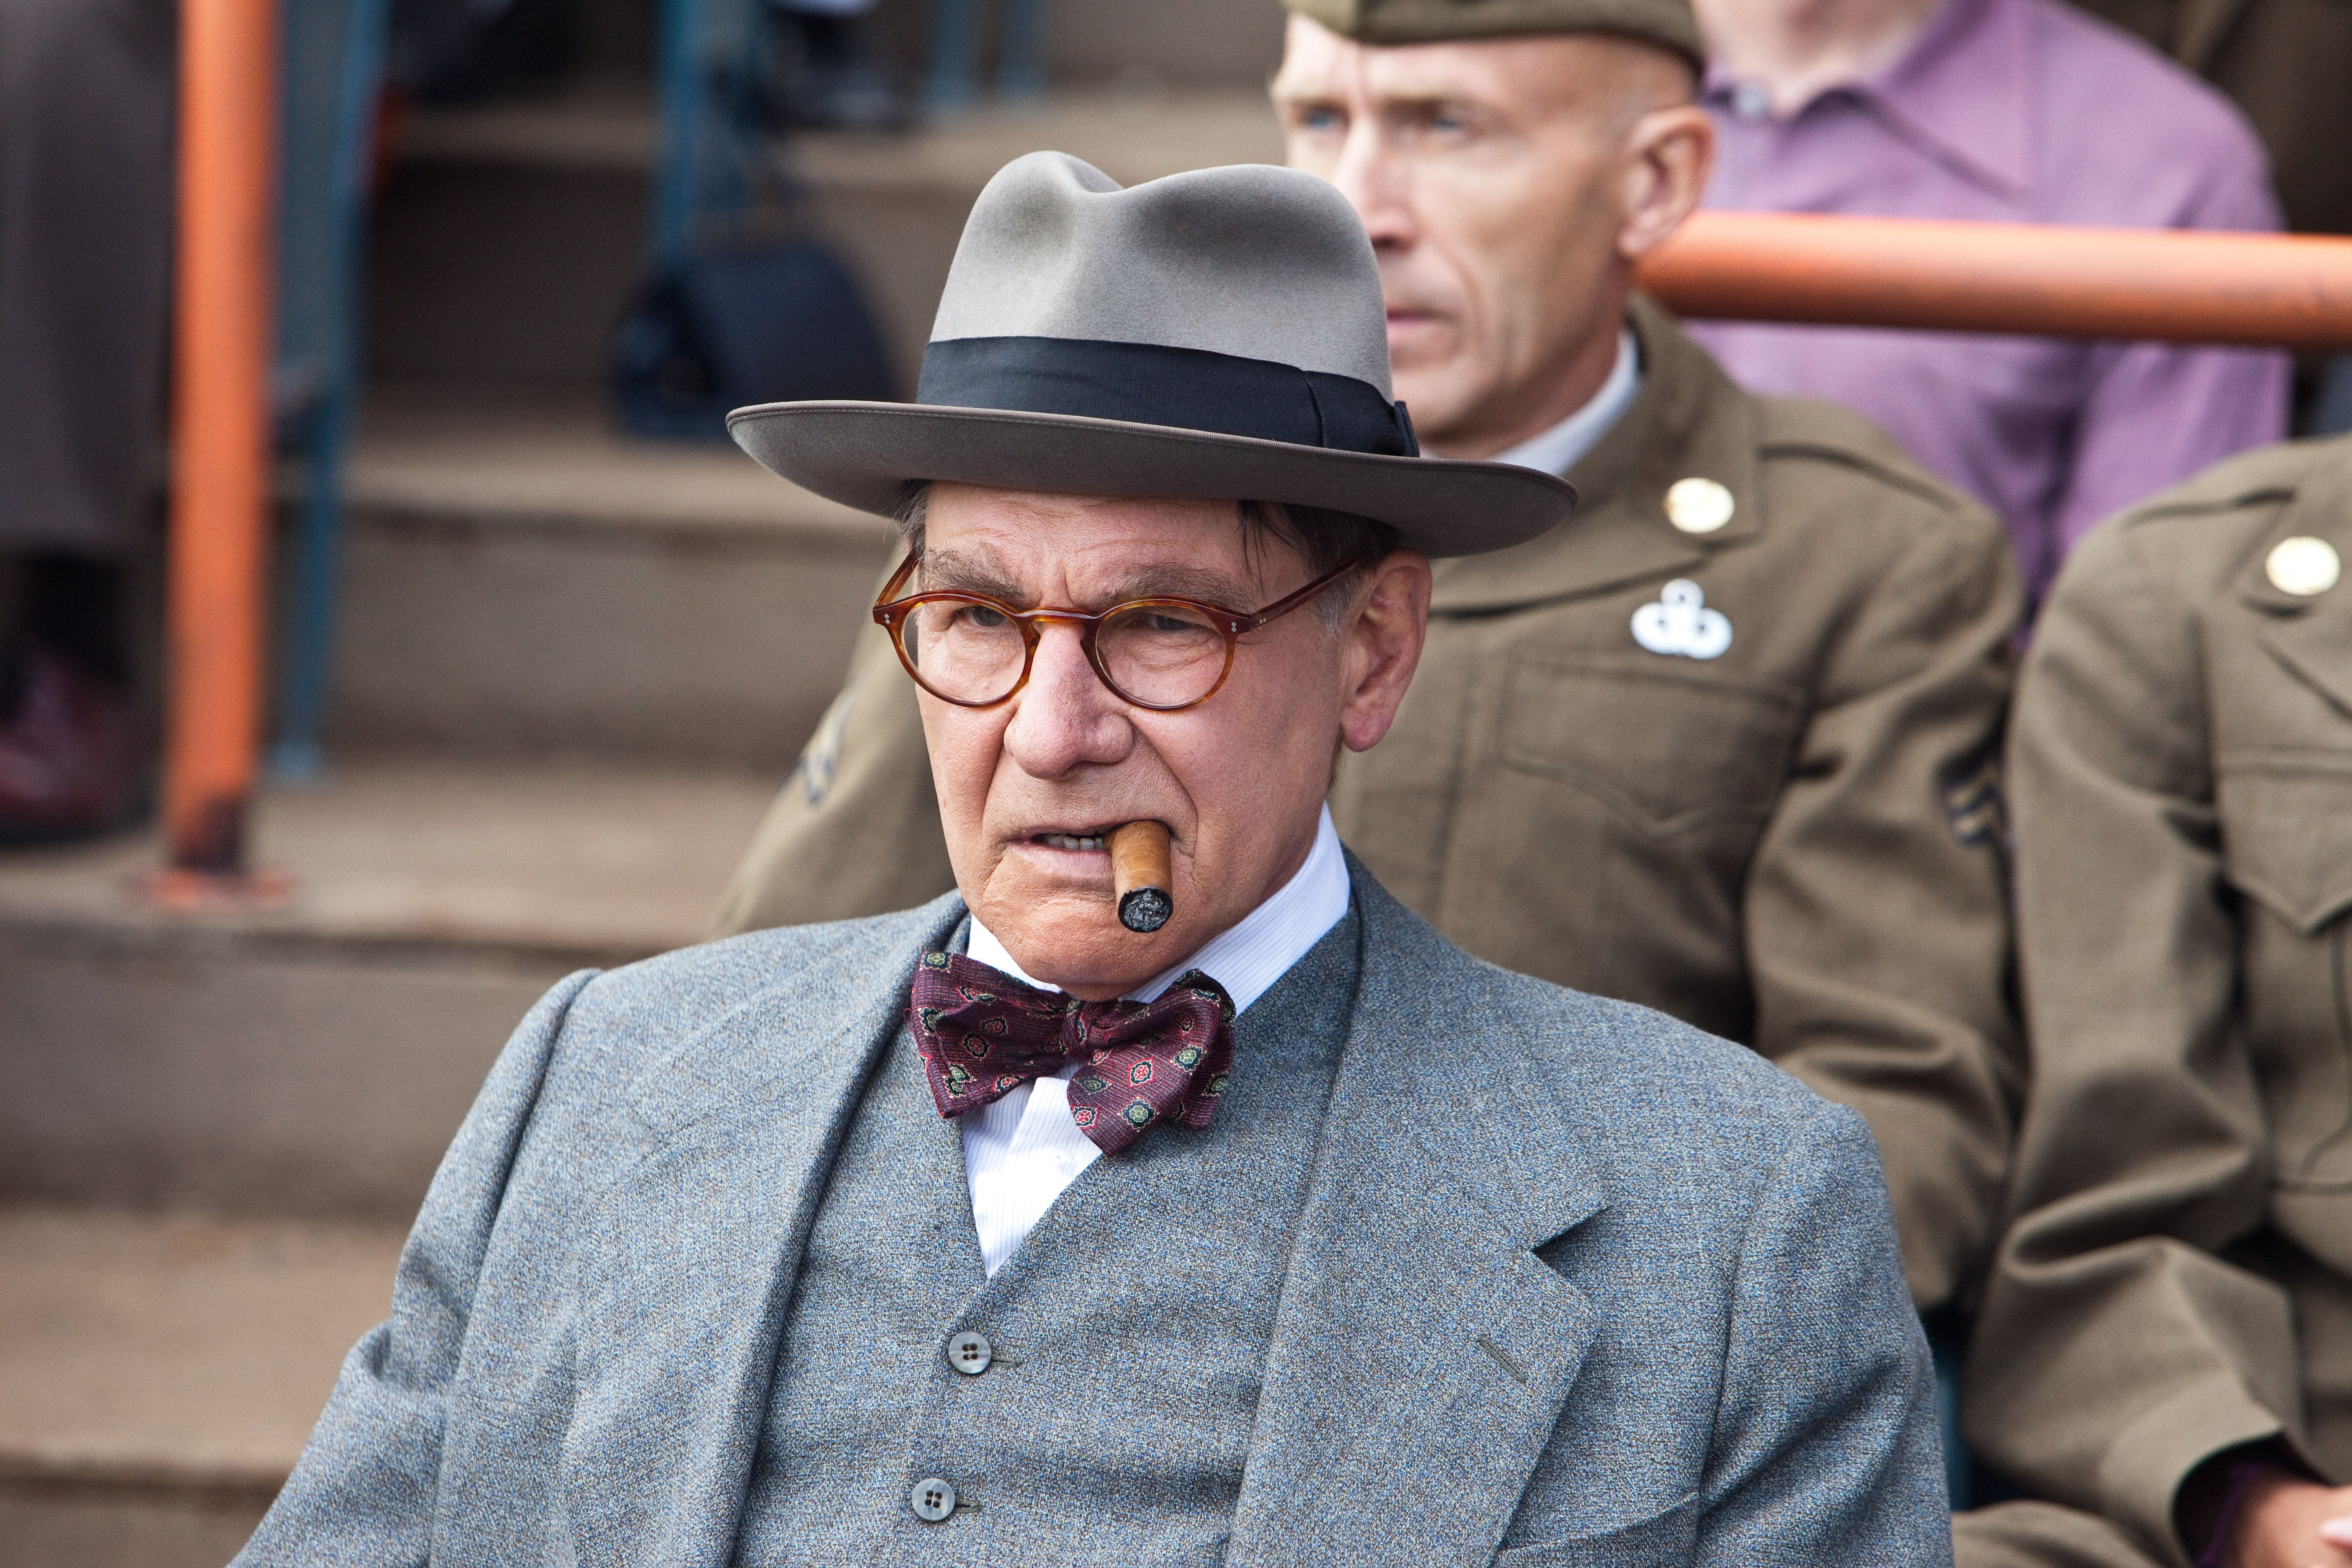 45 New Images from Jackie Robinson Biopic 42 Starring Chadwick Boseman and Harrison Ford